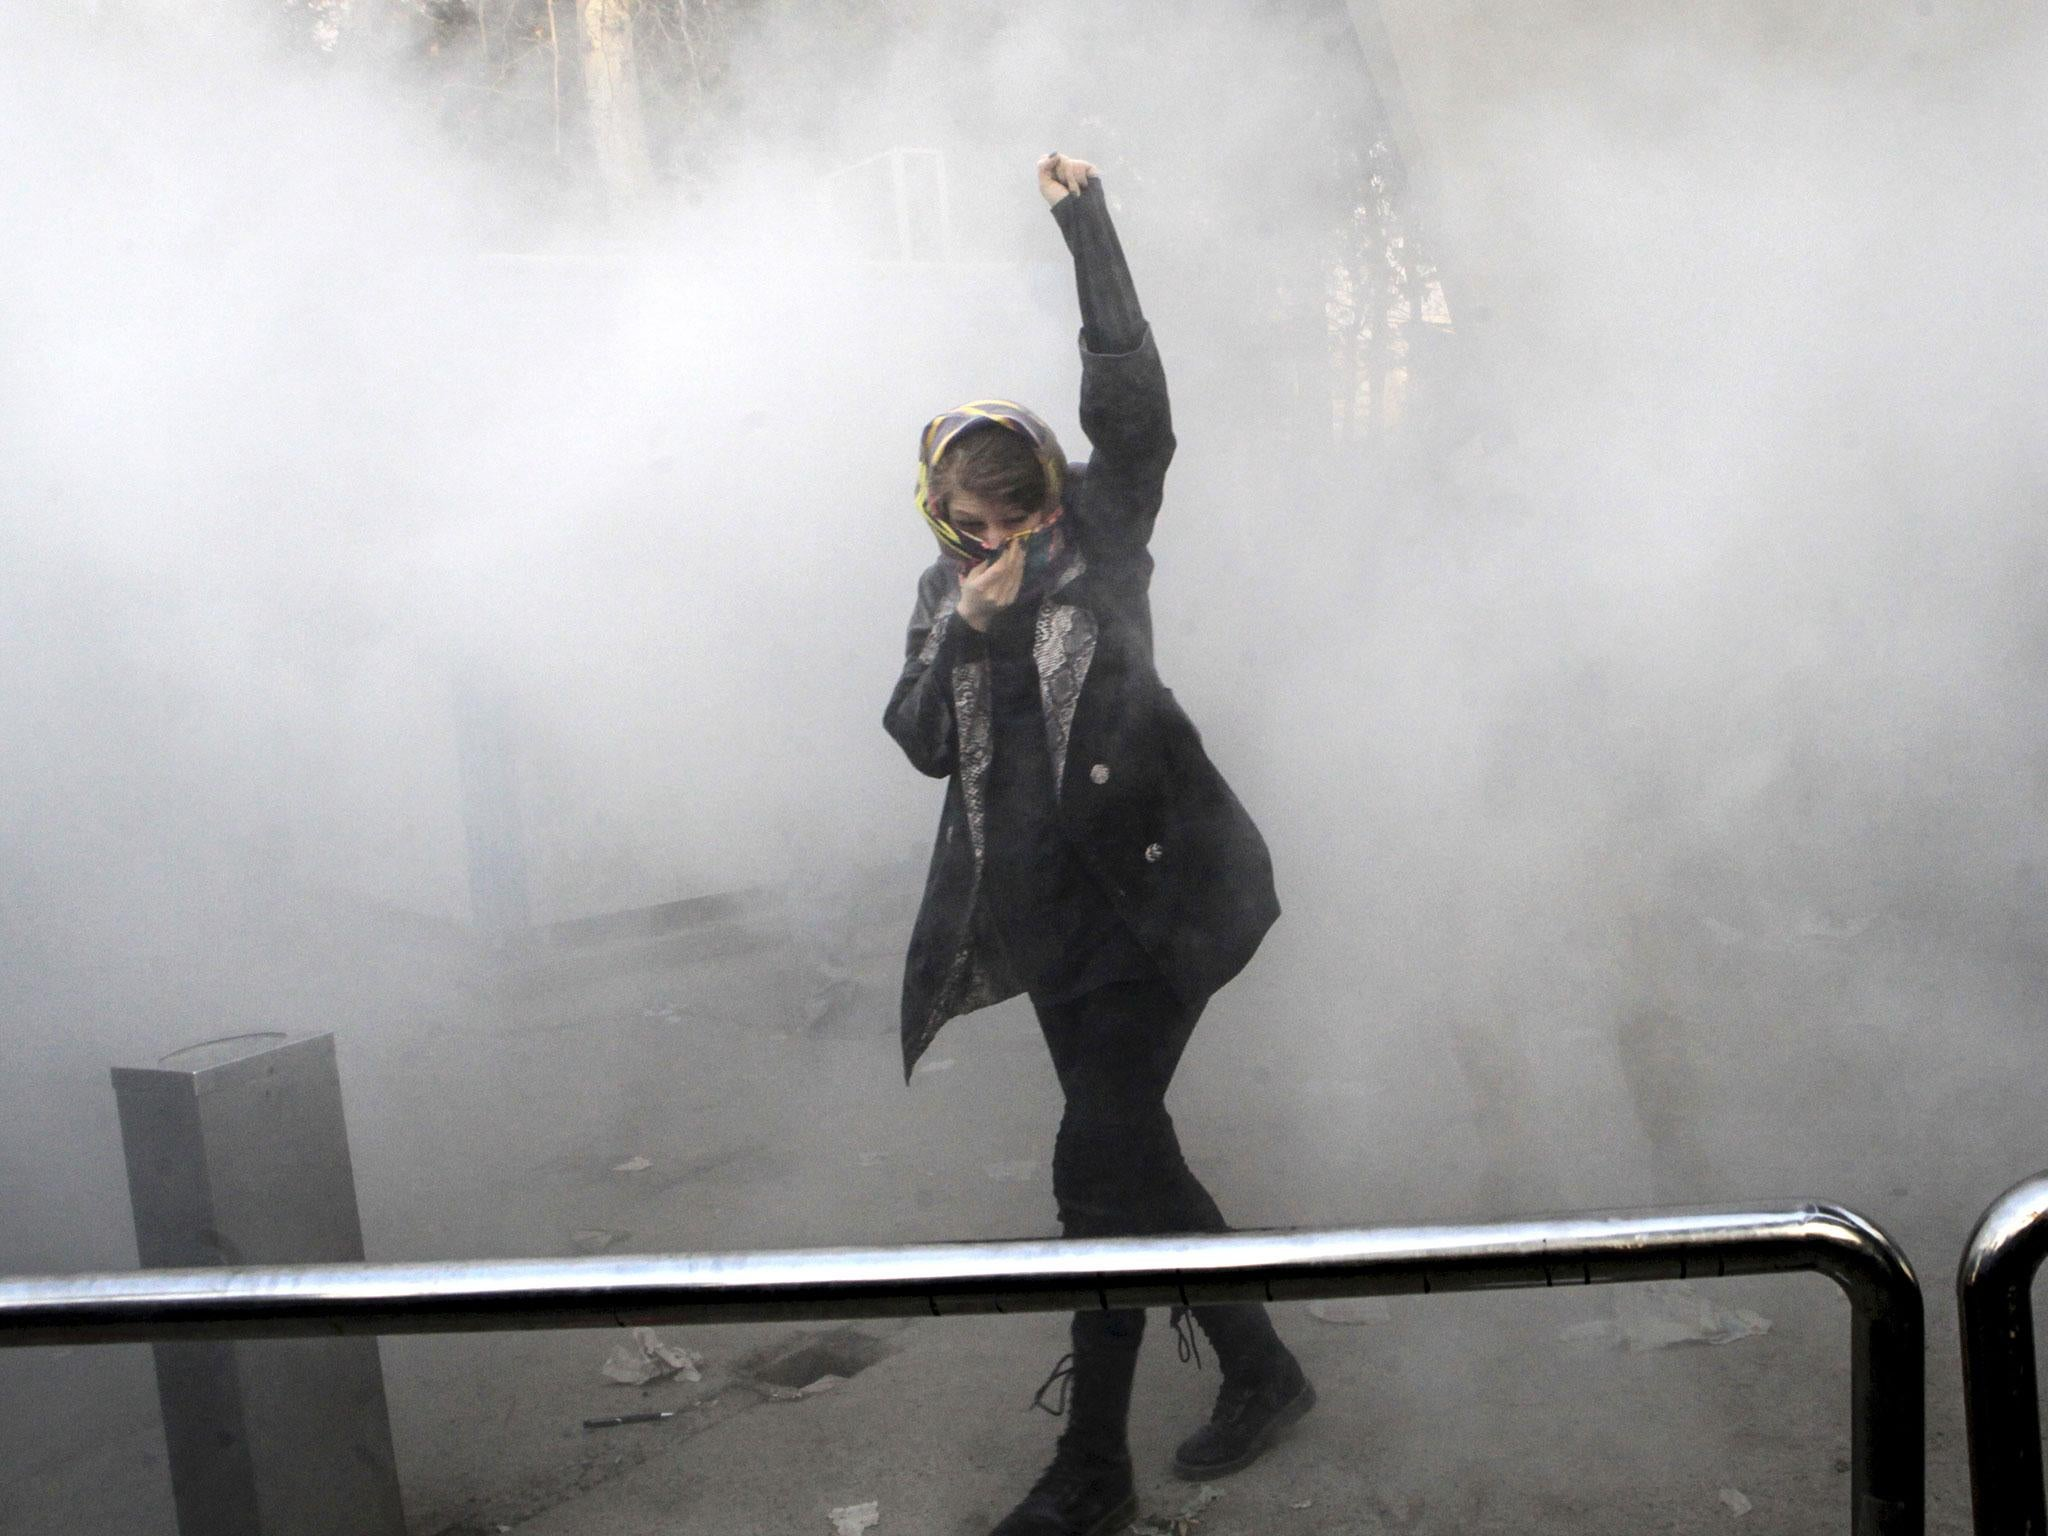 Iran Sex Videos Download Classy iran protests - as it happened: supreme leader accuses foreign